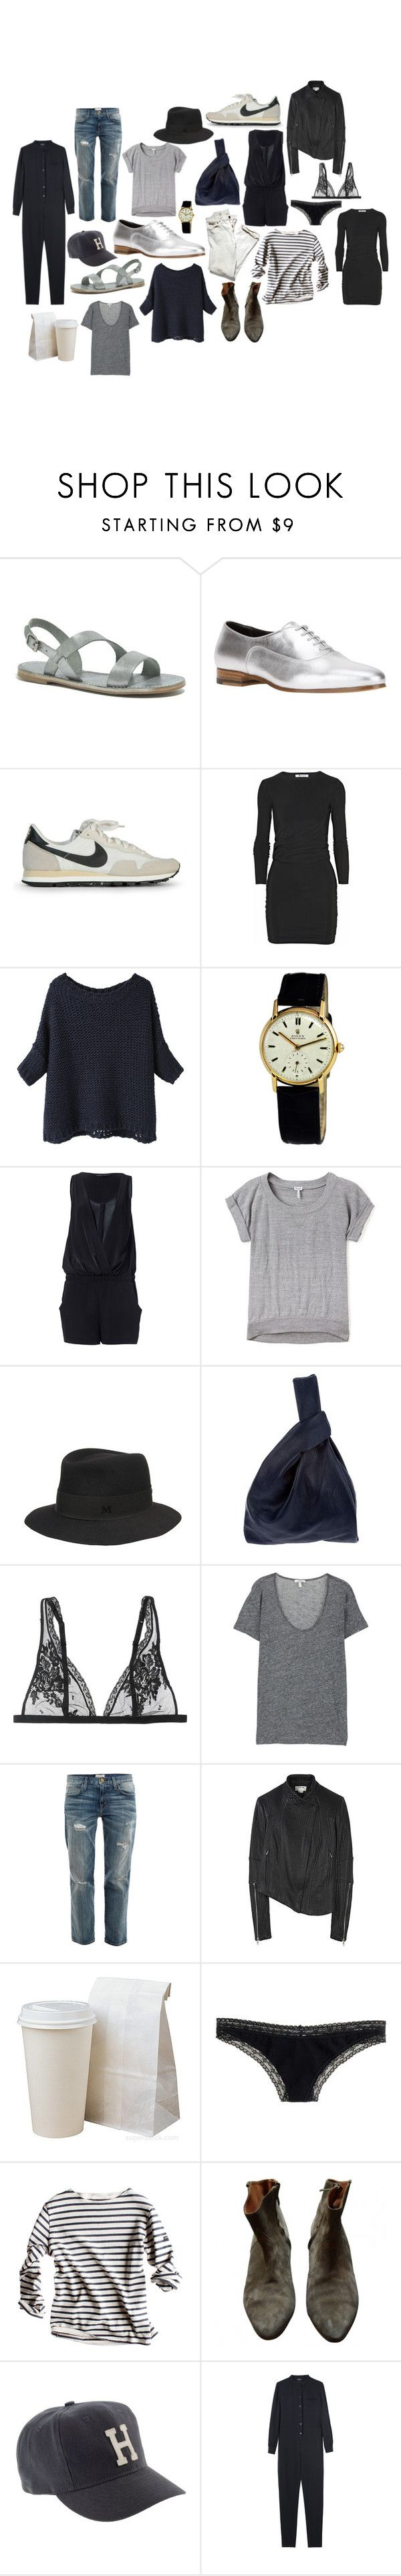 """""""lately."""" by coffeestainedcashmere ❤ liked on Polyvore featuring Madewell, Yves Saint Laurent, NIKE, T By Alexander Wang, BLACK CRANE, Rolex, Zara, Splendid, Maison Michel and Jil Sander"""